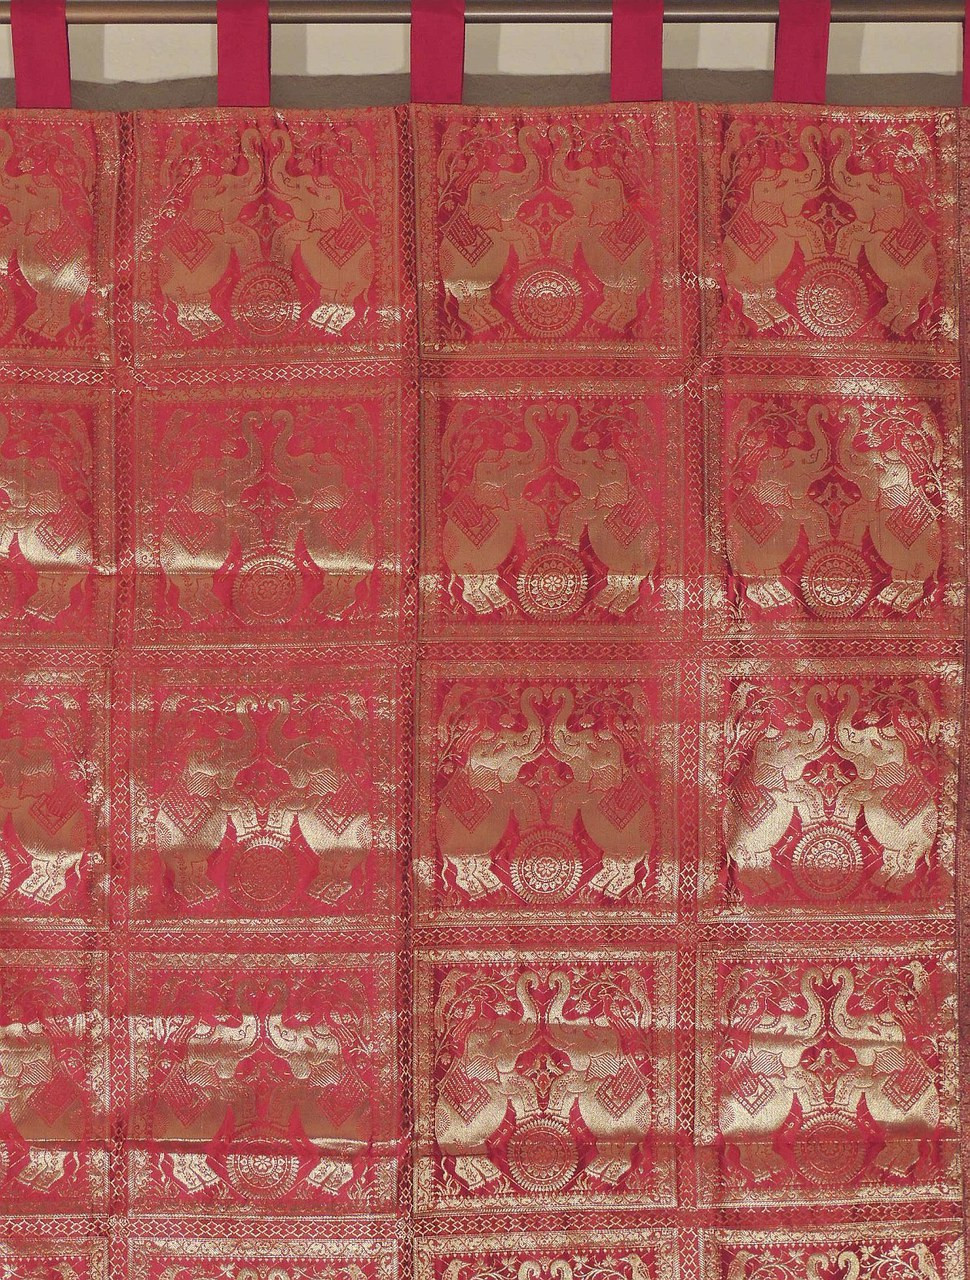 Elephant curtain red brocade traditional indian living - Curtain ideas for living room india ...